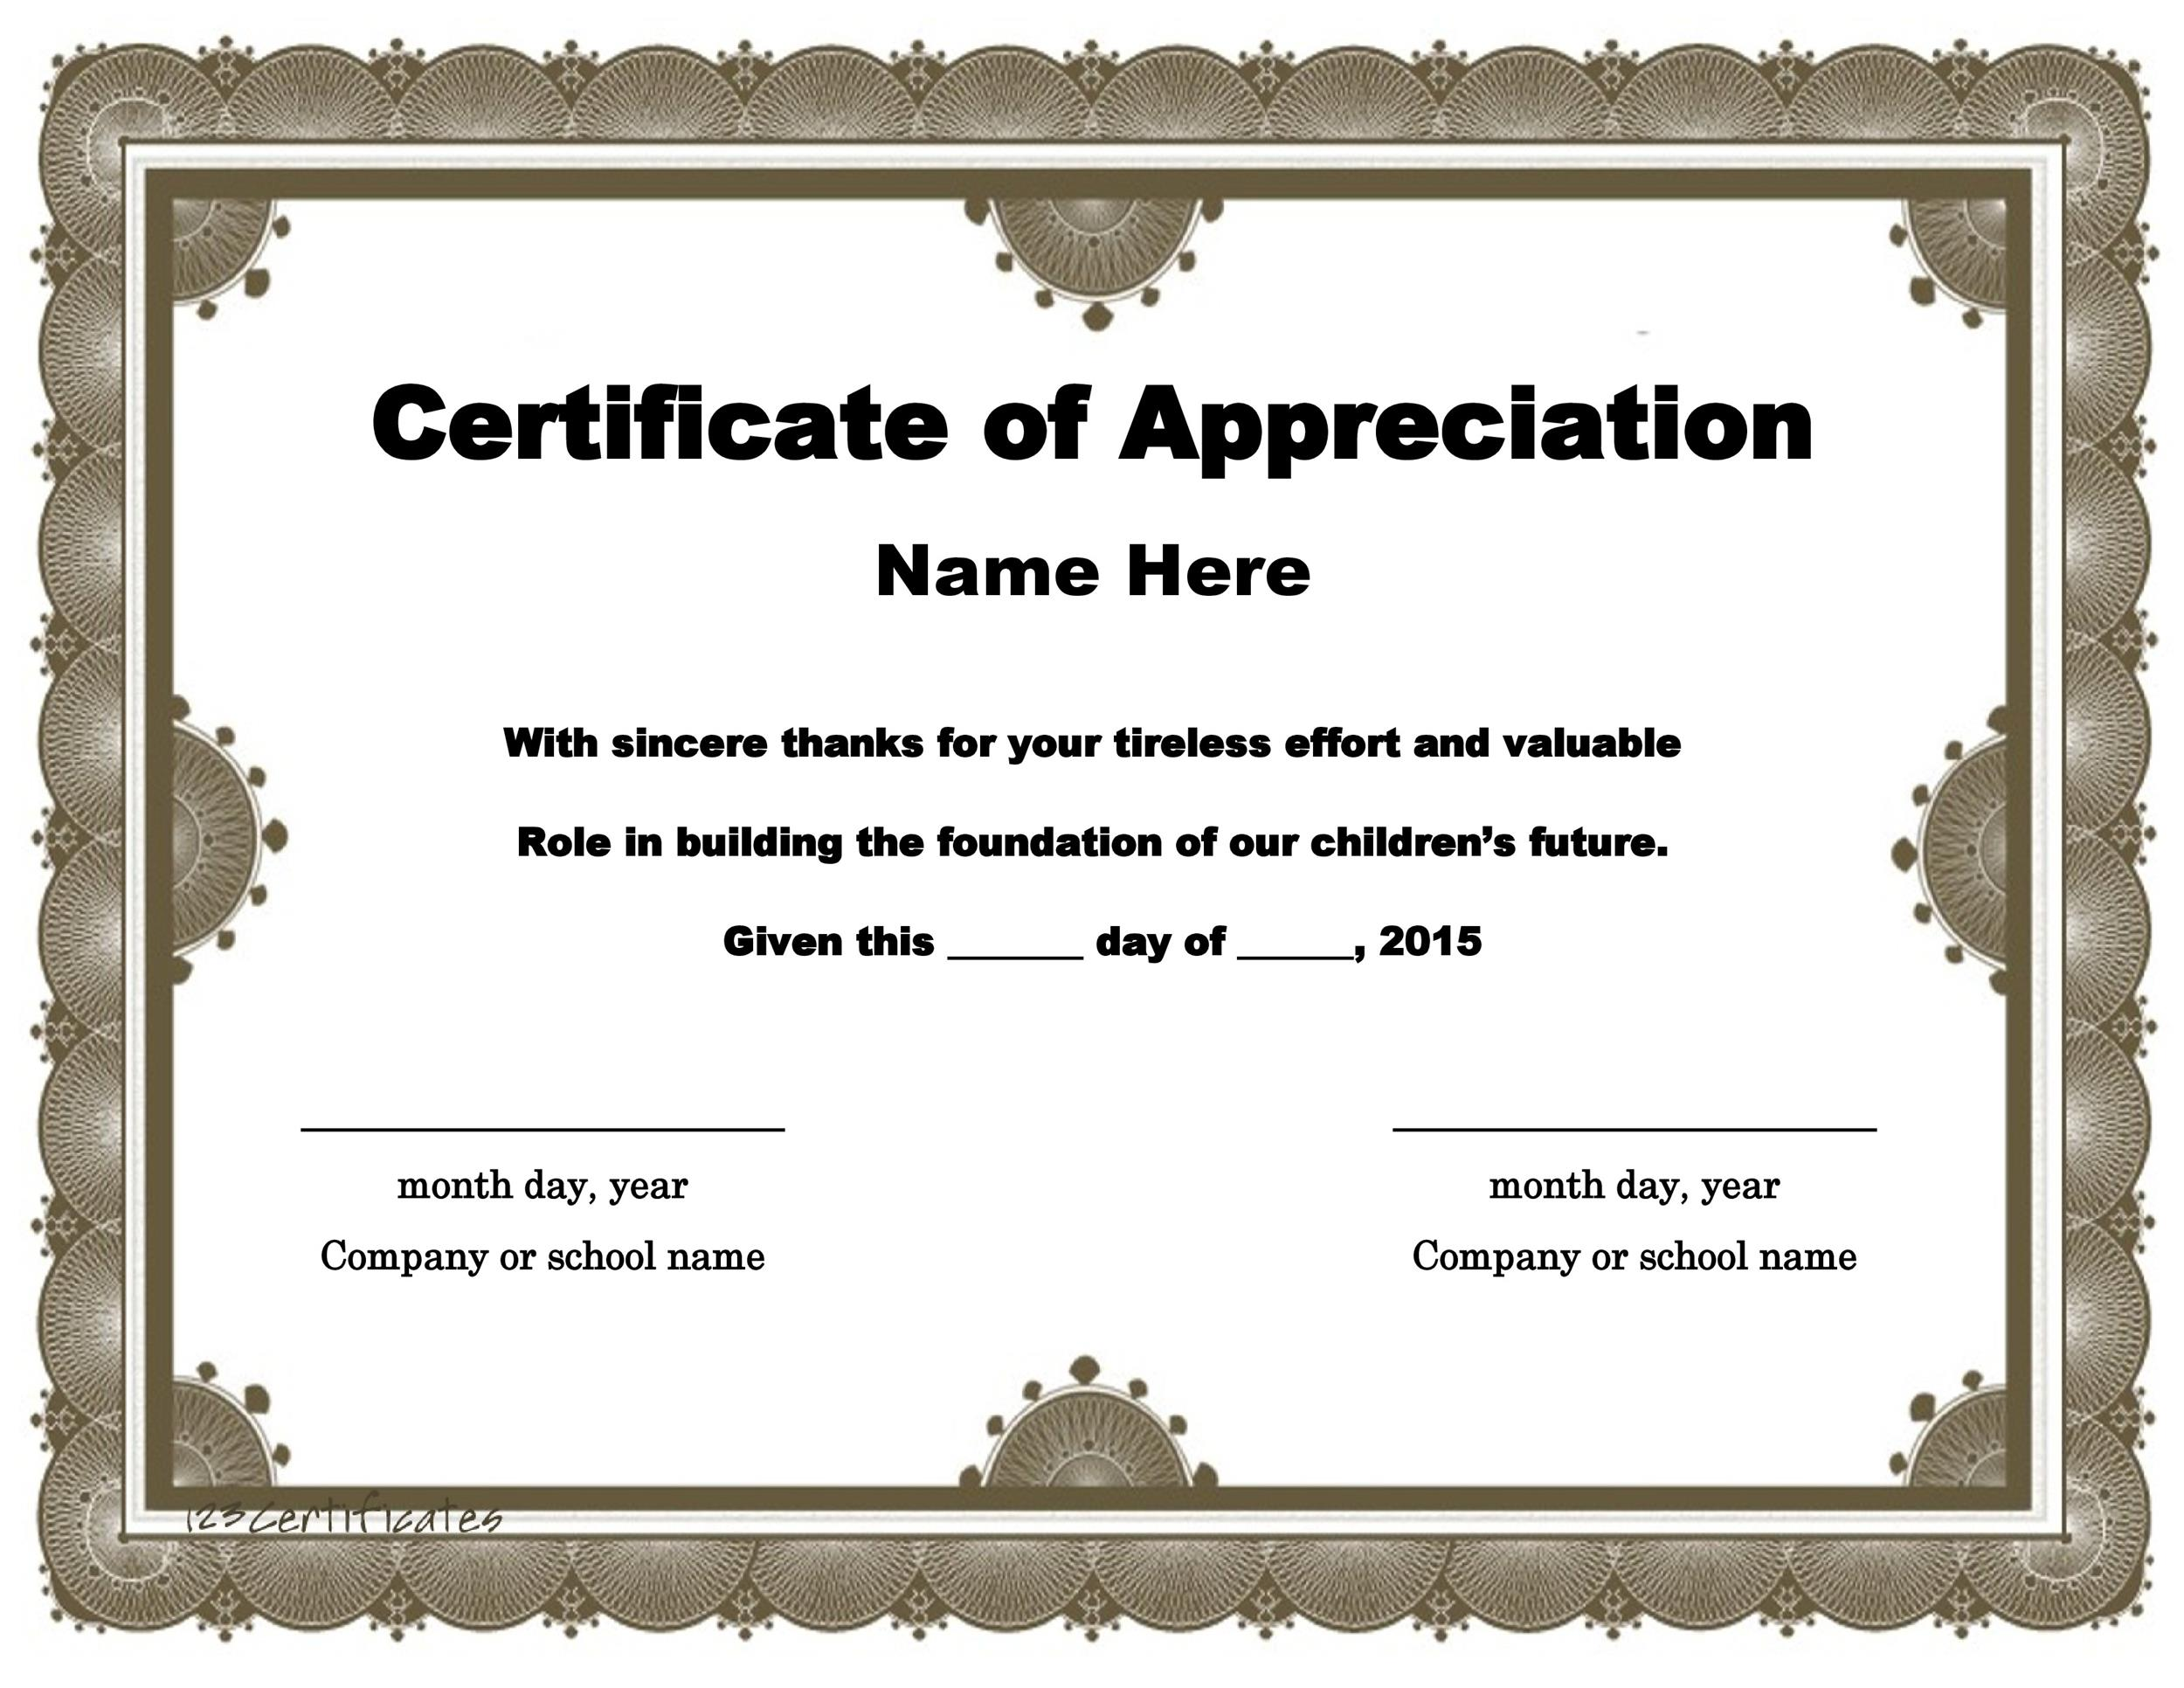 Merveilleux Printable Certificate Of Appreciation 03